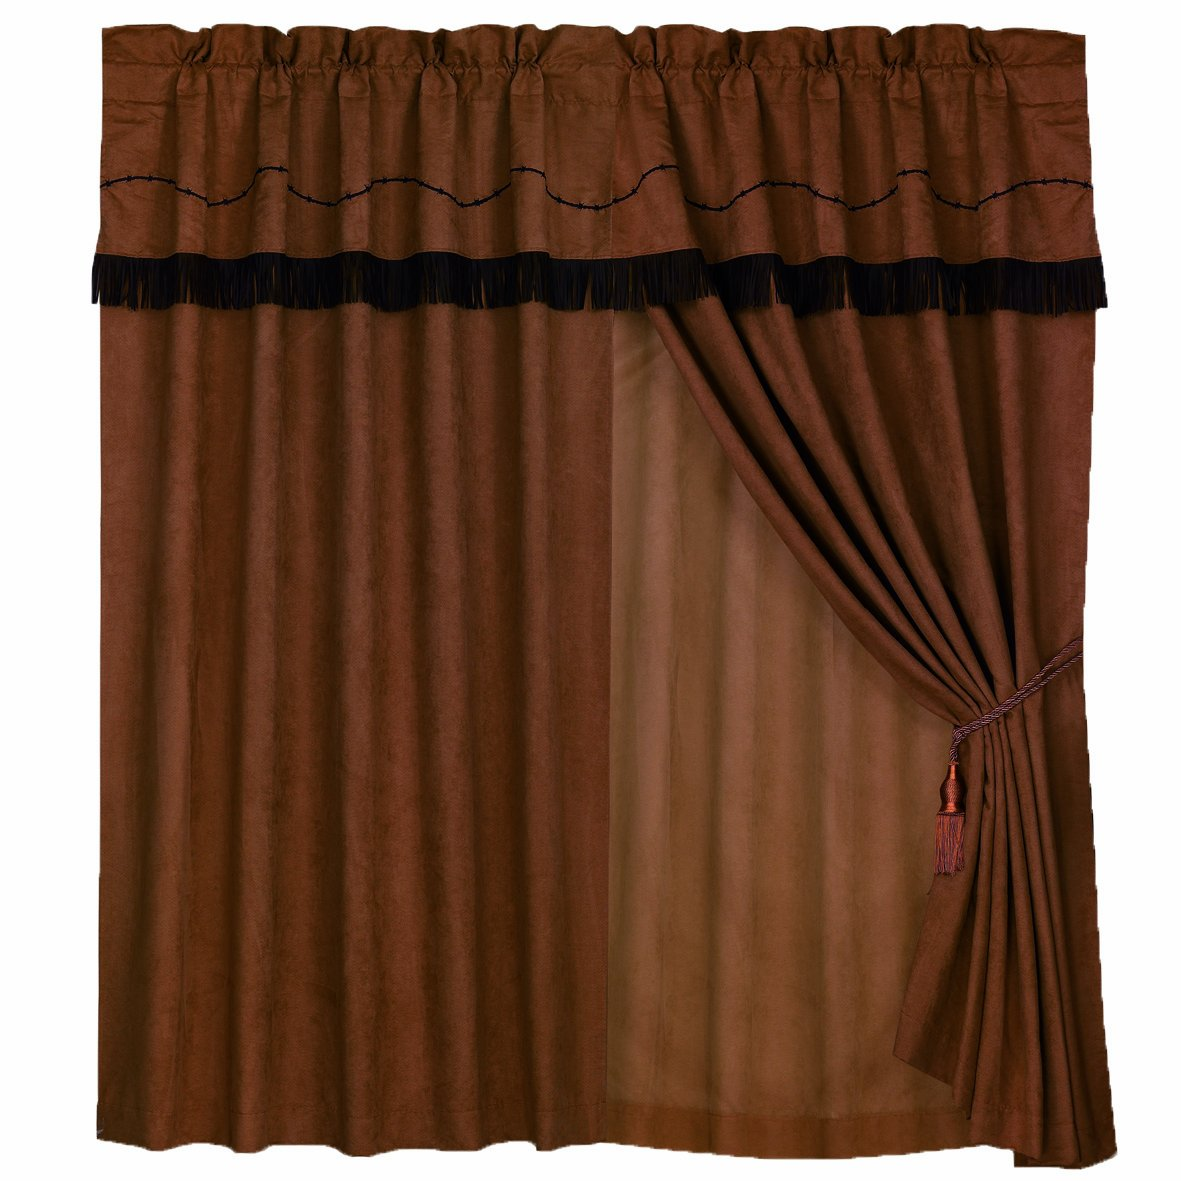 HiEnd Accents Barbwire Western Curtain by HiEnd Accents